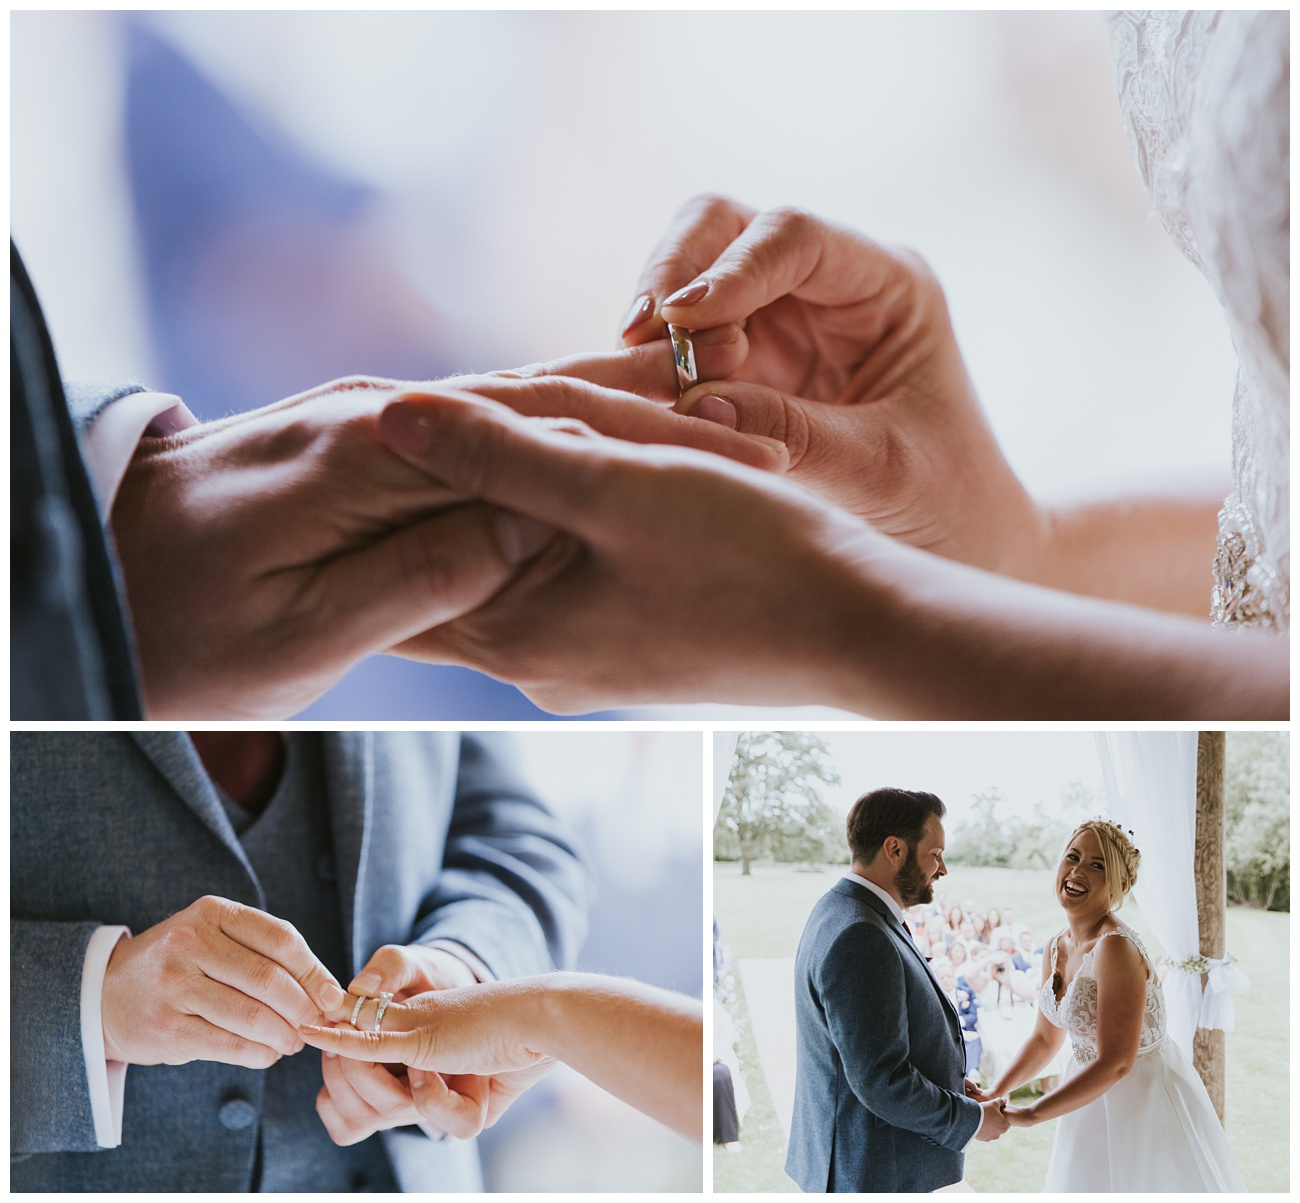 The wedding rings are placed on the fingers during the outdoor ceremony